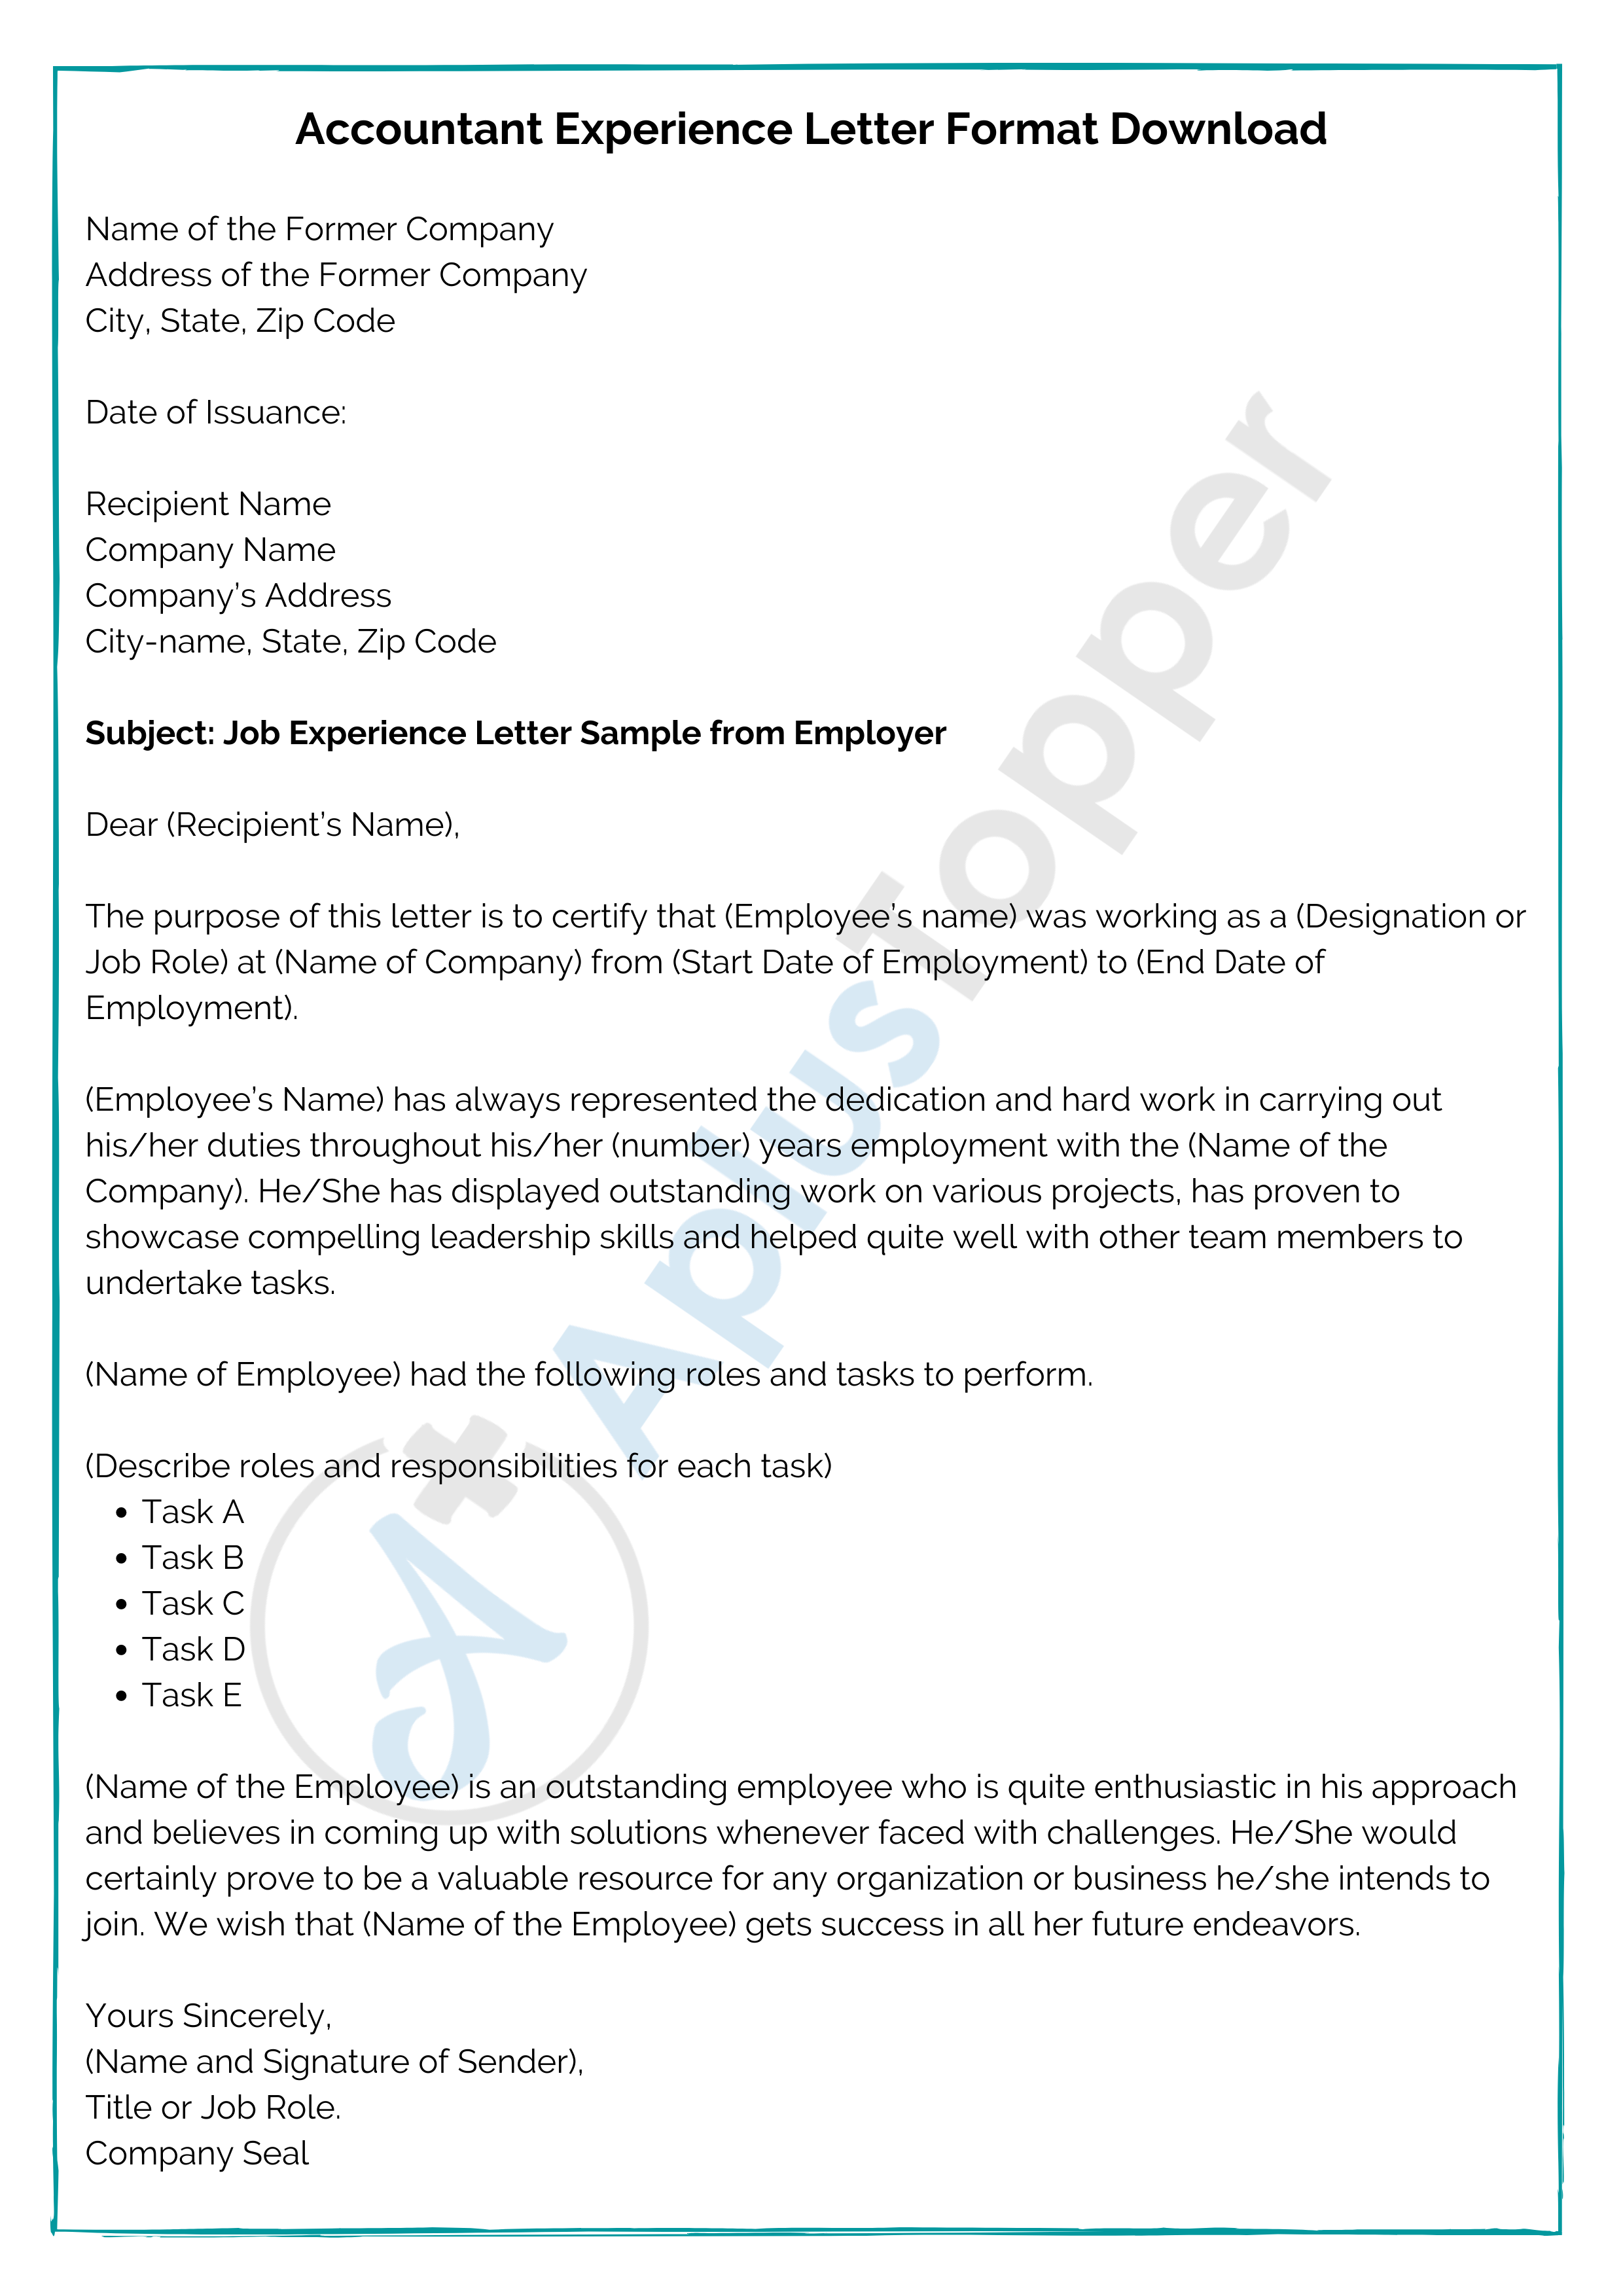 Accountant Experience Letter Format Download